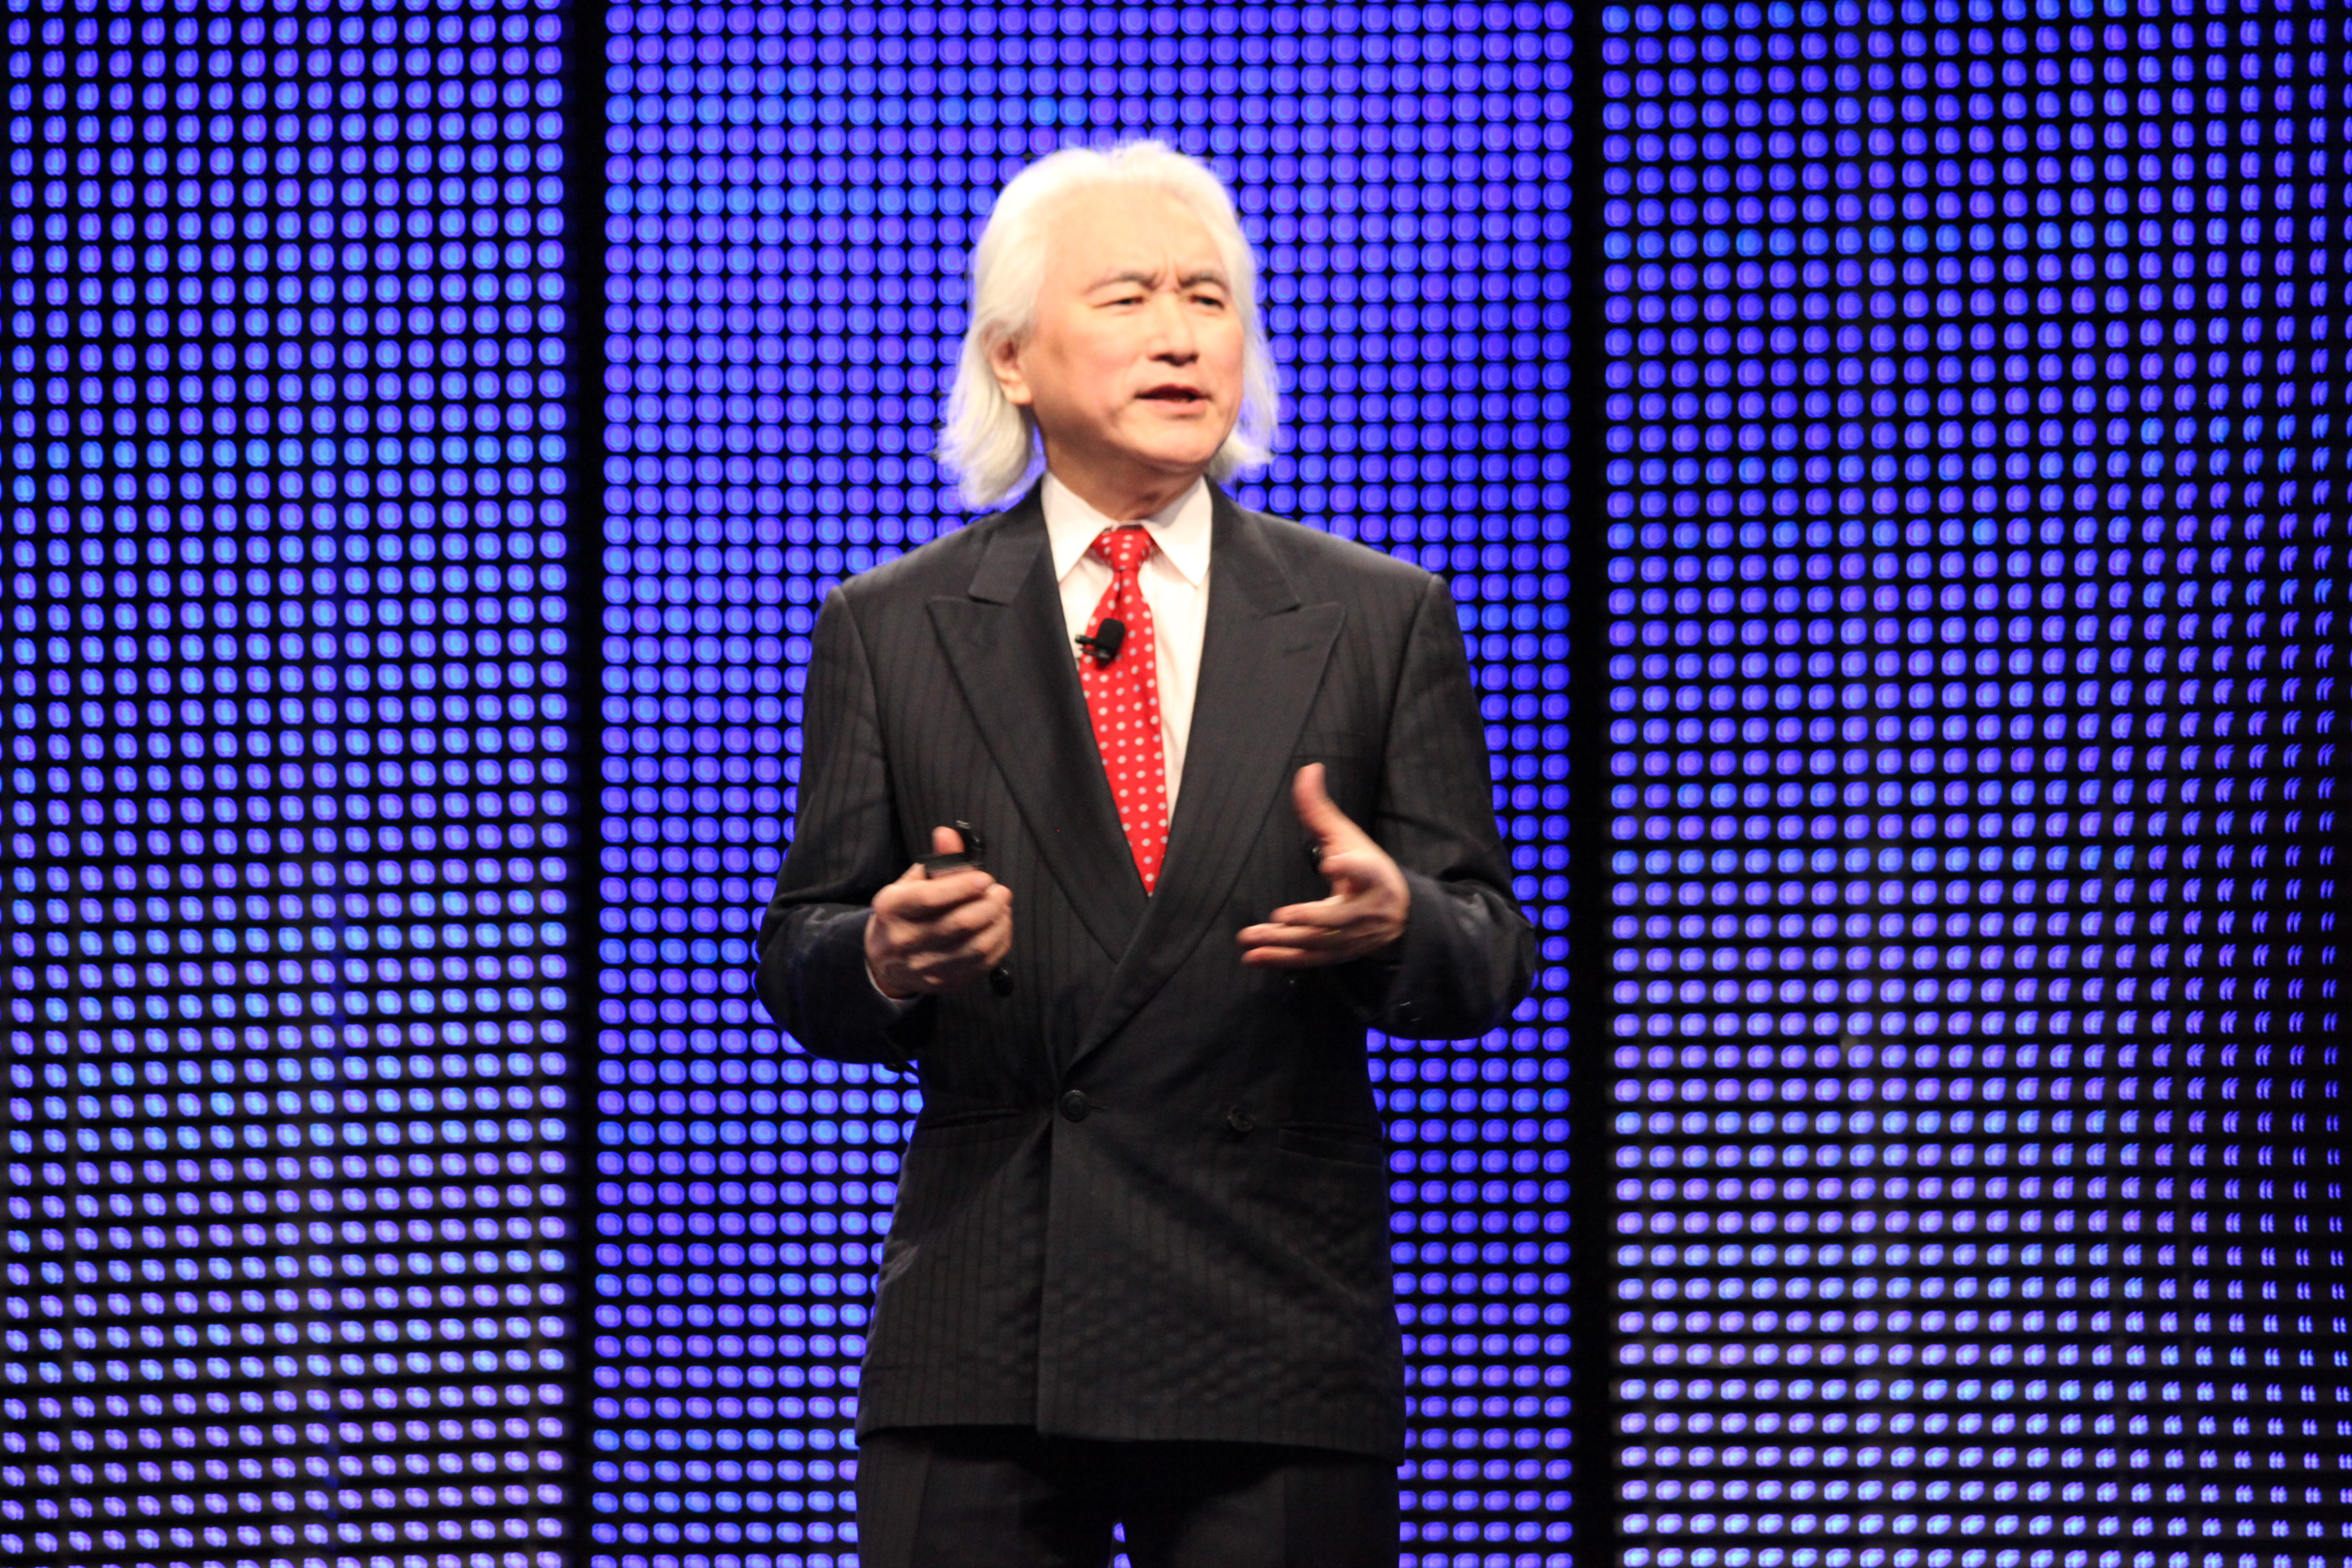 Dreaming about Design's Future with Dr. Michio Kaku